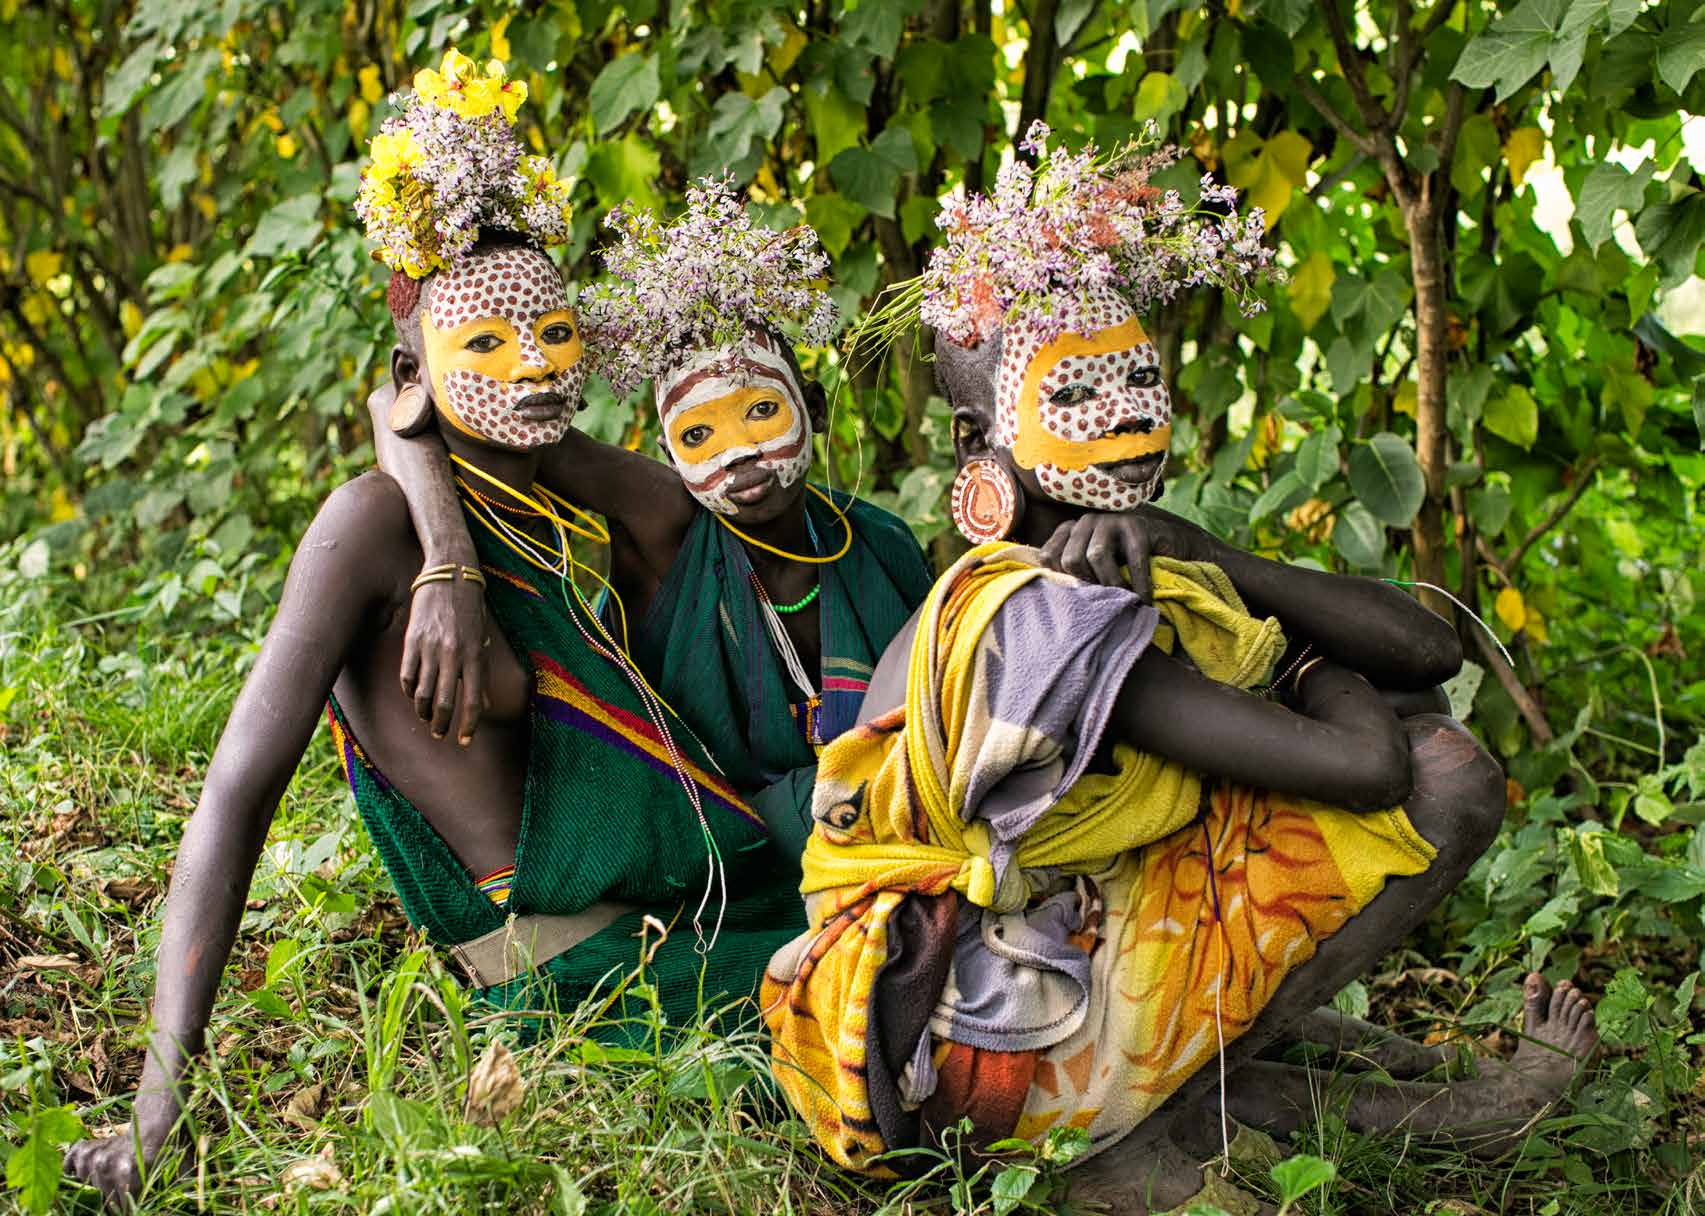 Vanishing Surma Tribe: photography by Nadine Saacks